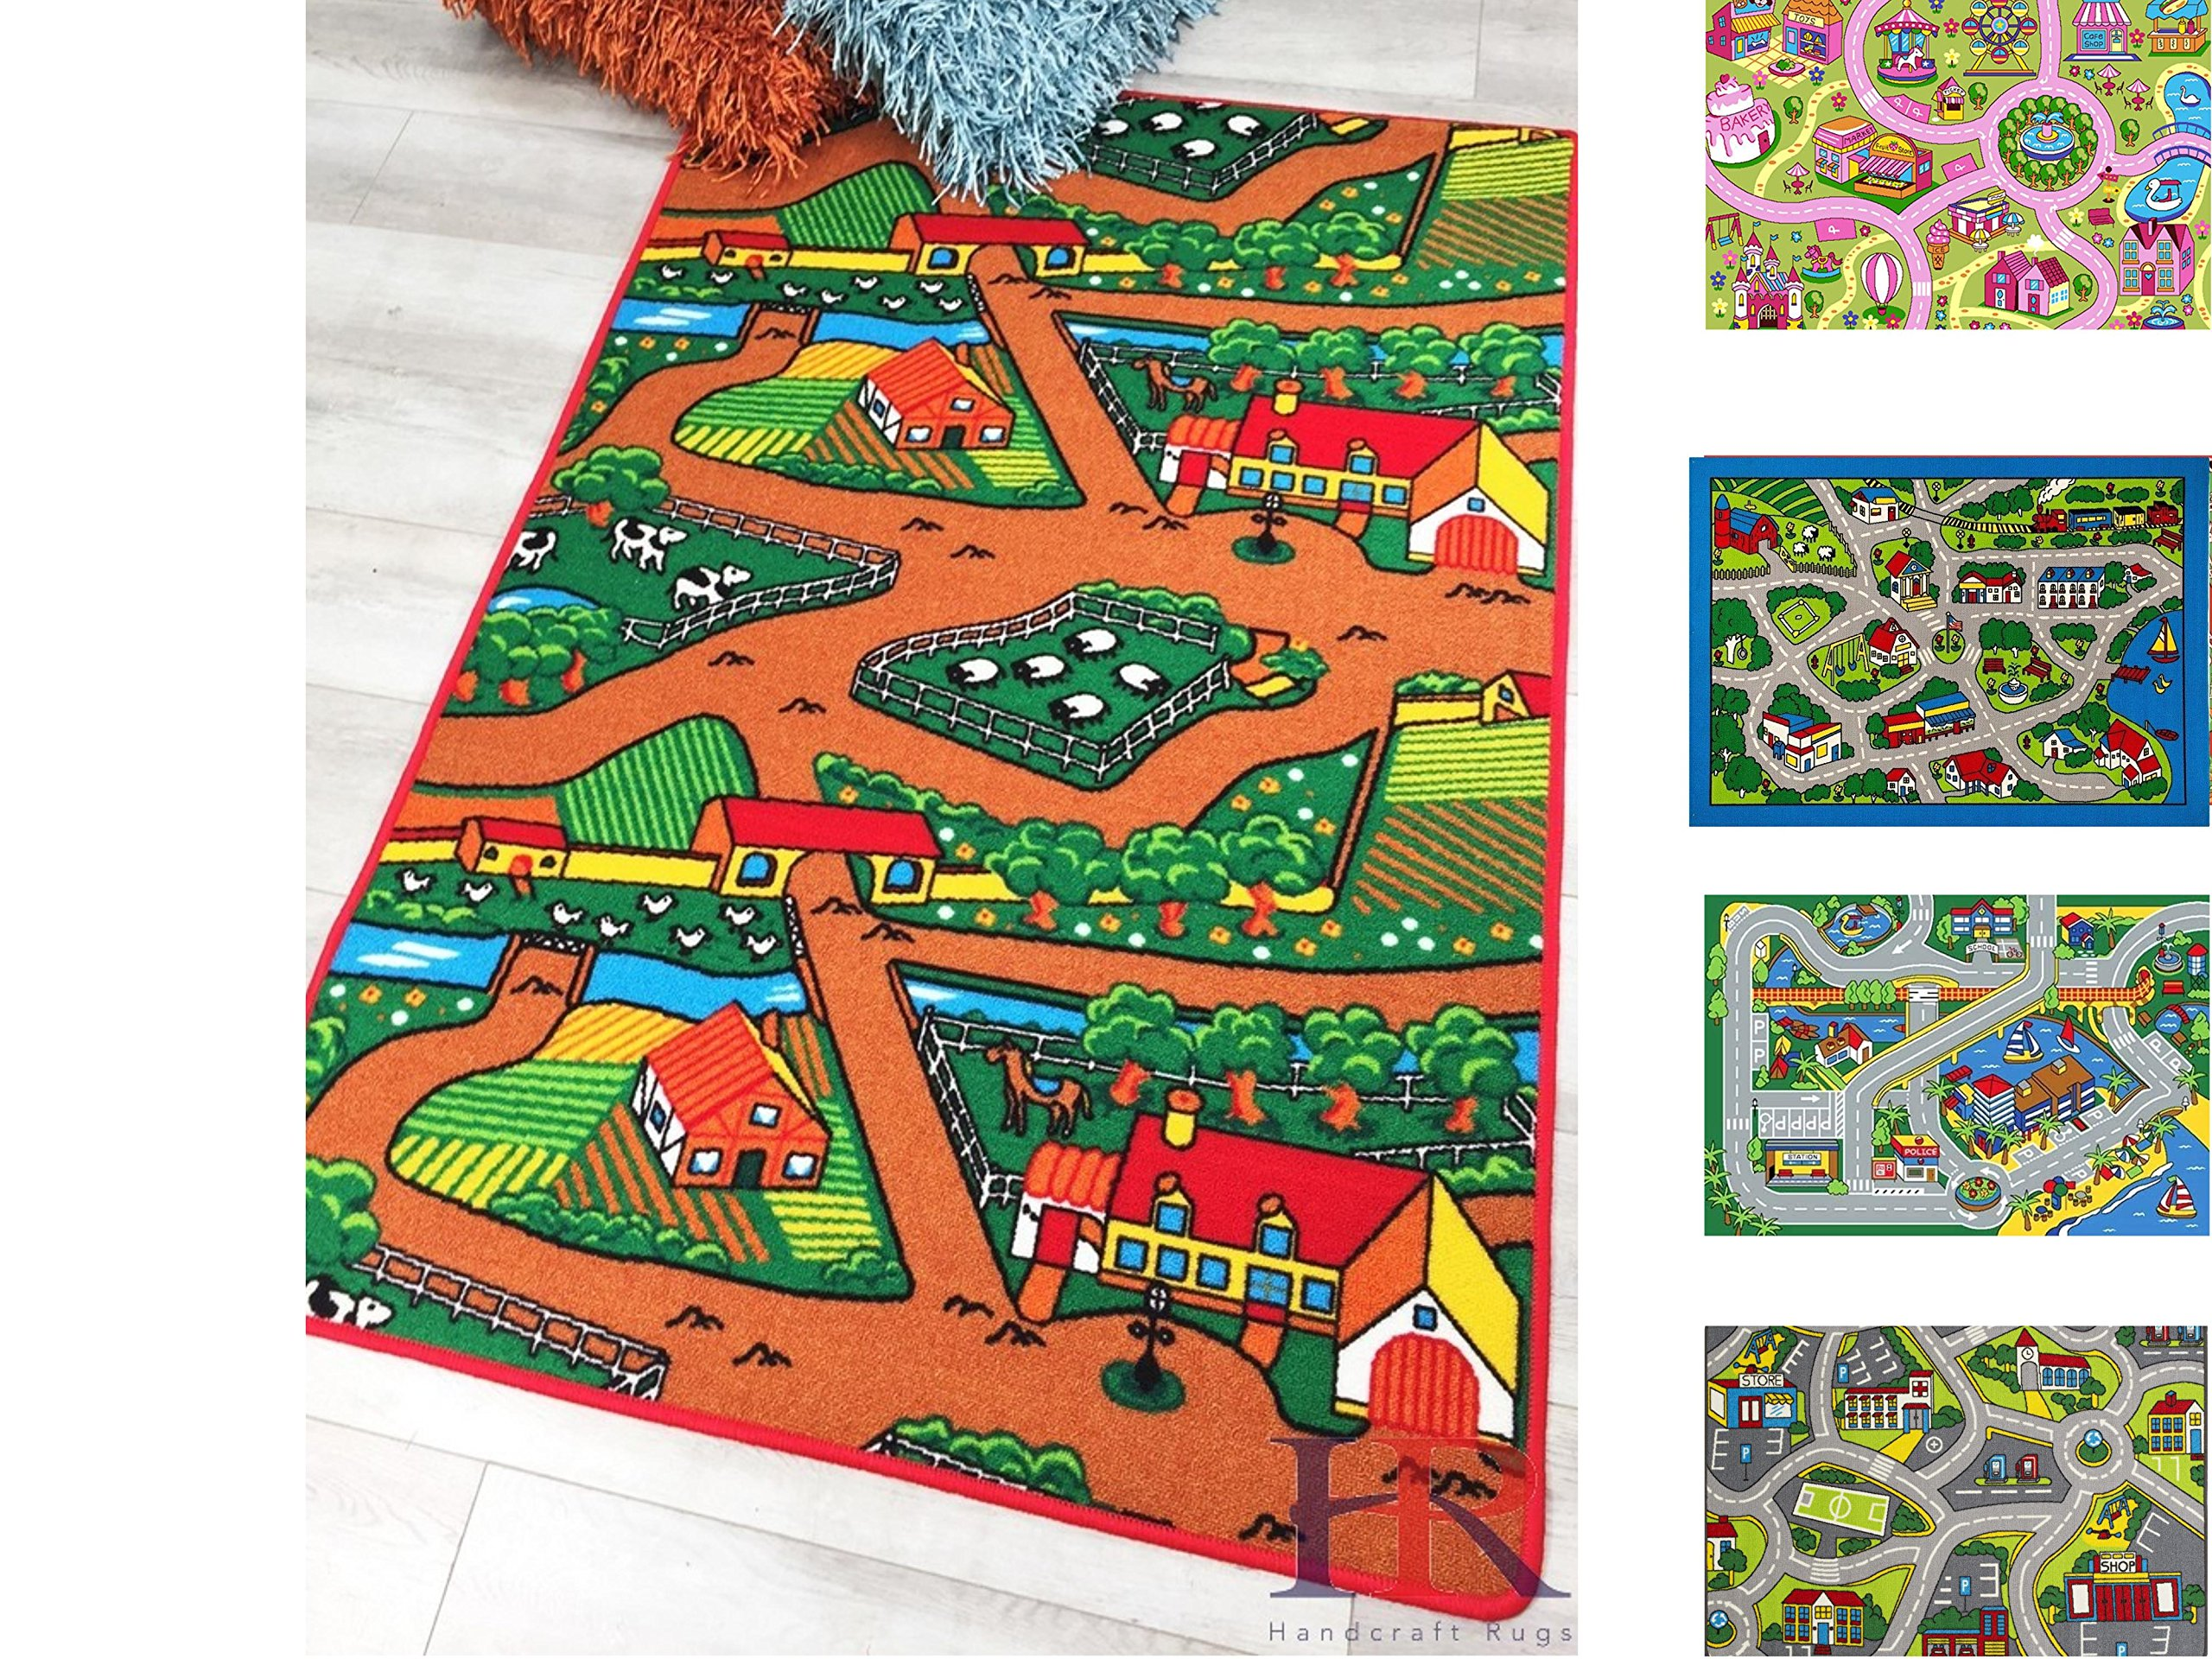 Handcraft Rugs Kids Rugs by My Farm Pattern of Road Driving Fun Brown/Green and Multi Anti Slip Rug/Game Carpets for Kids/Kids Toy/Kids learning Floor mat (Approximately 3 feet by 5 feet) by Handcraft Rugs (Image #1)